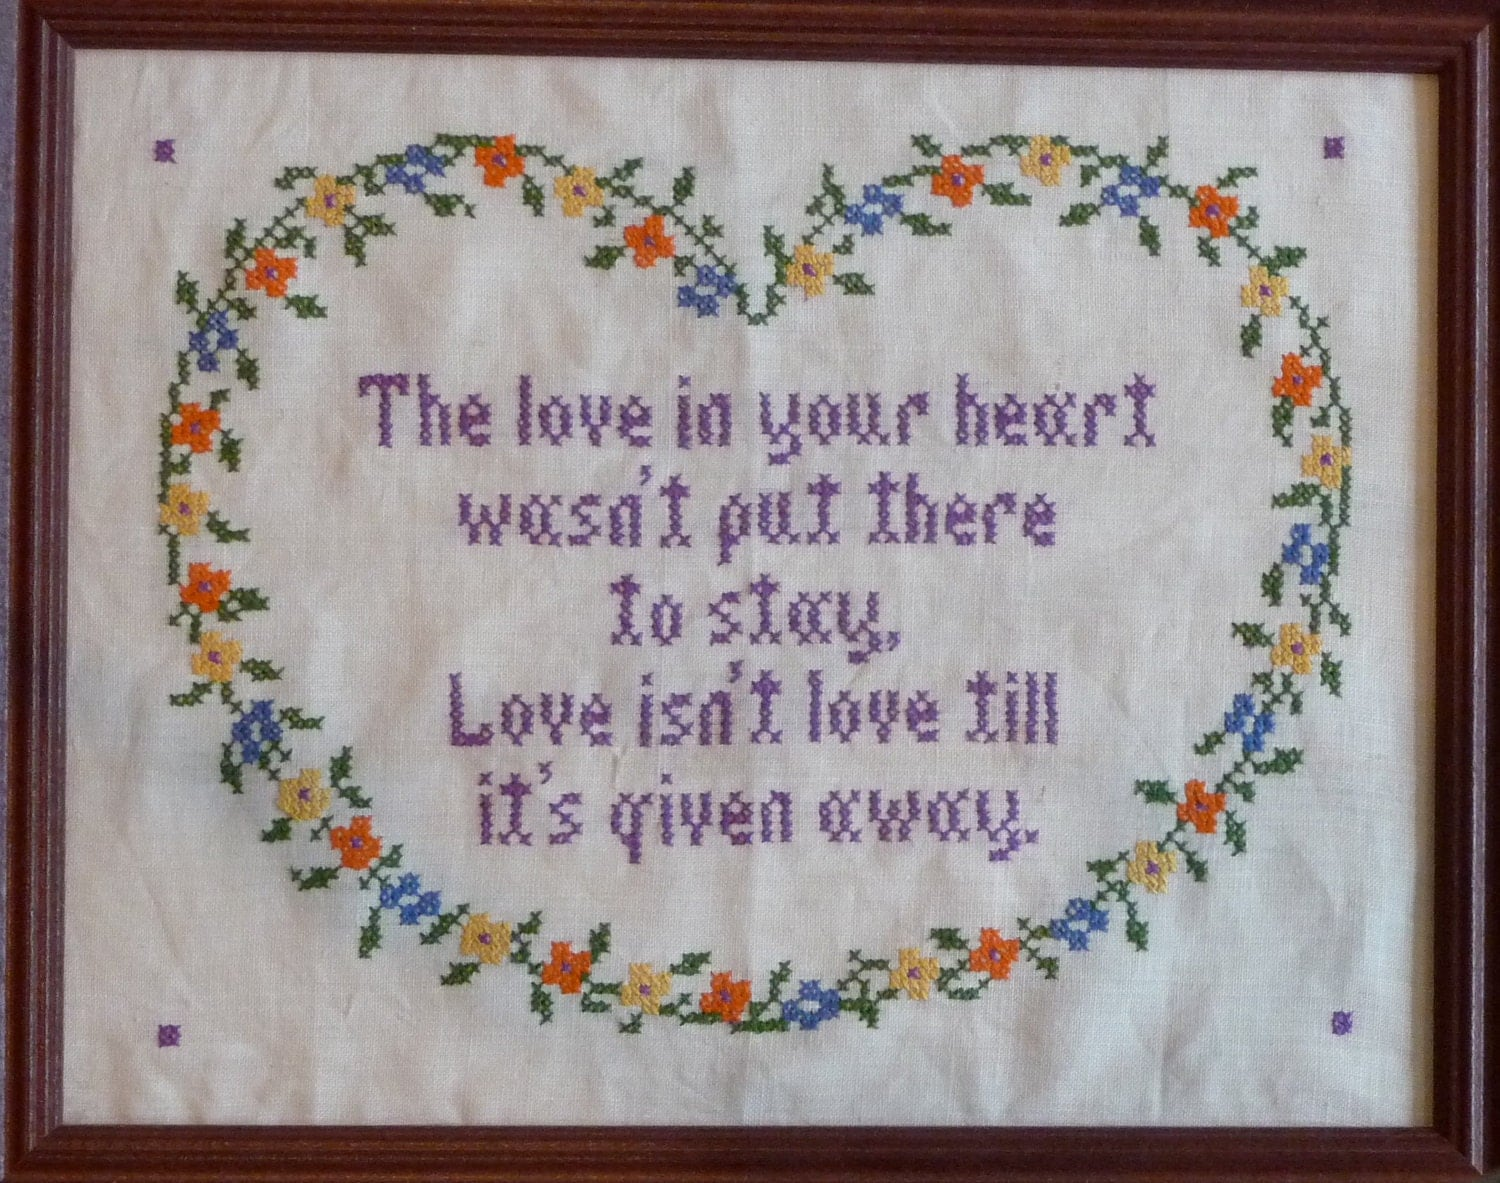 Jane snead samplers vintage cross stitch kit love in your